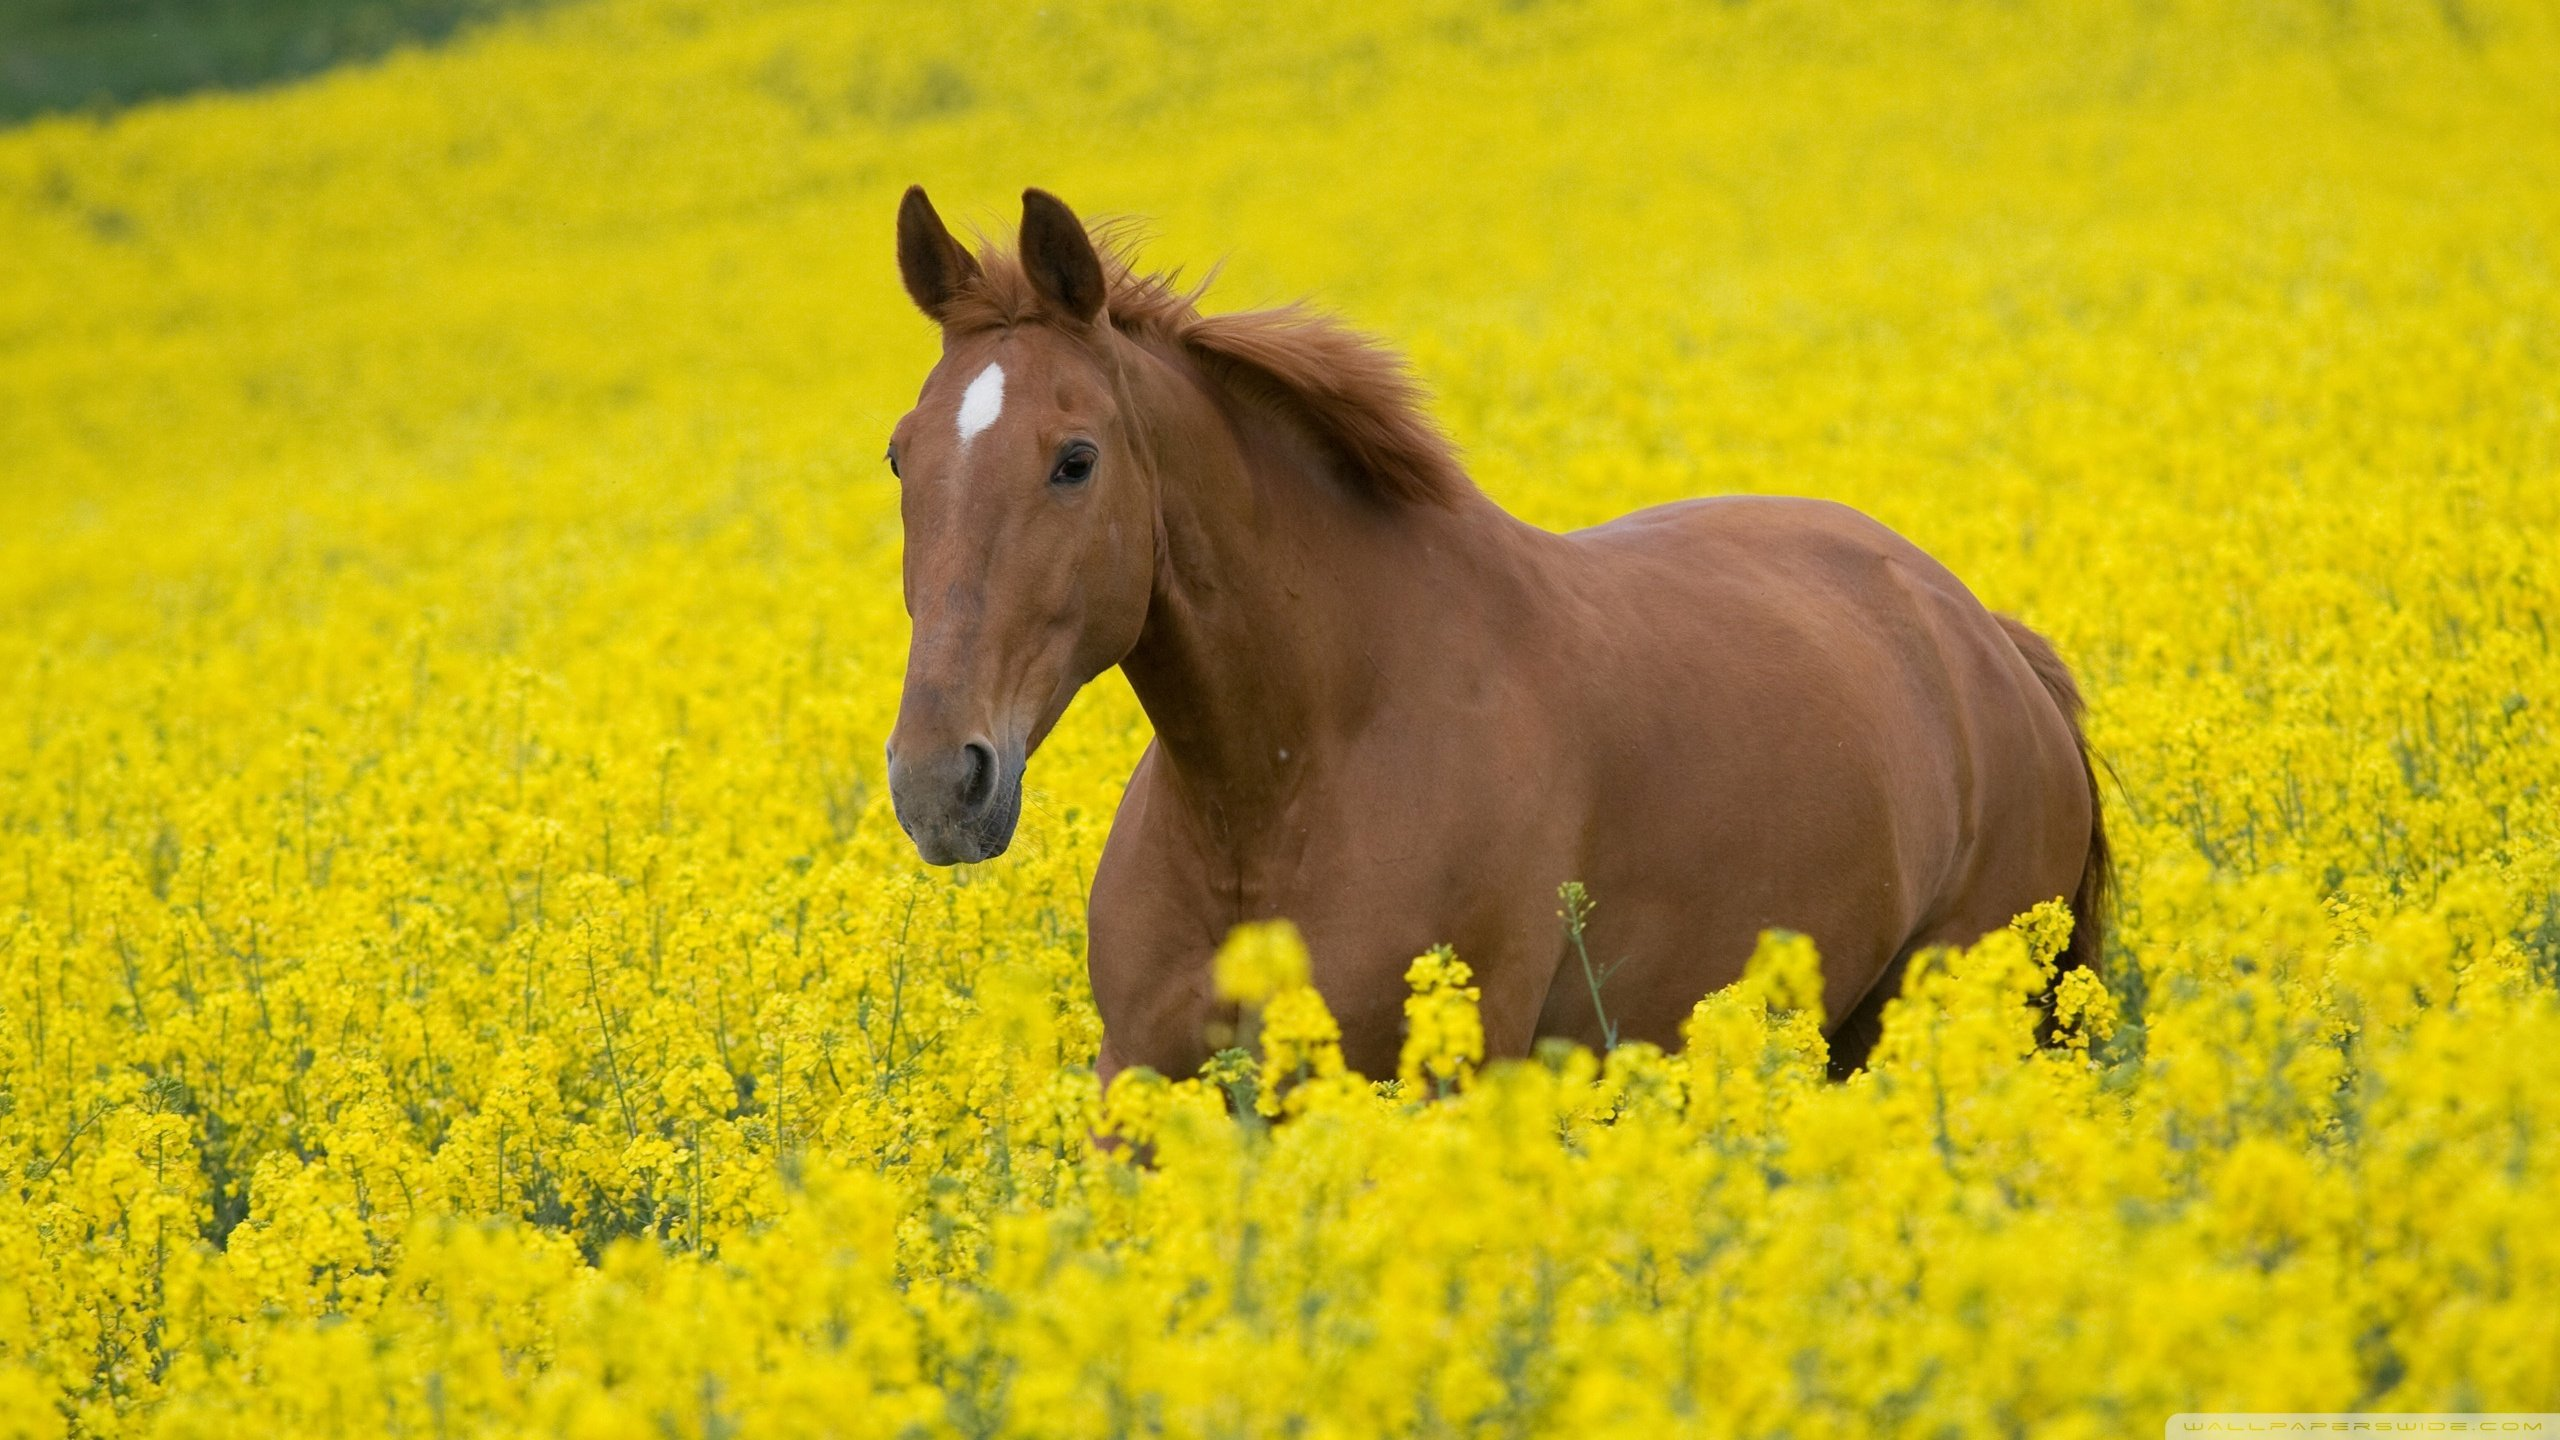 Awesome Horse free wallpaper ID:23598 for hd 2560x1440 desktop